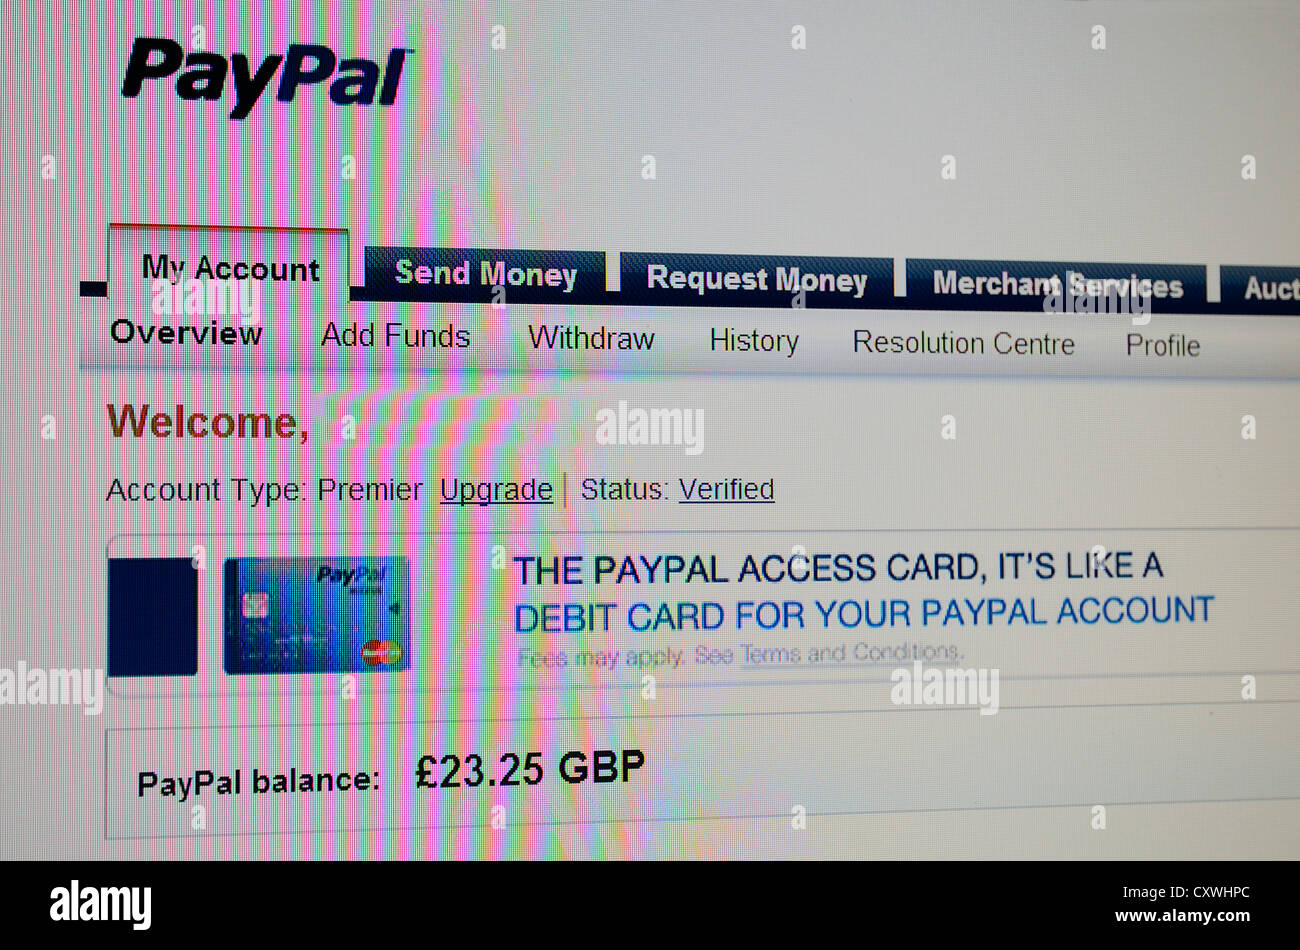 Paypal Stock Photos & Paypal Stock Images - Alamy